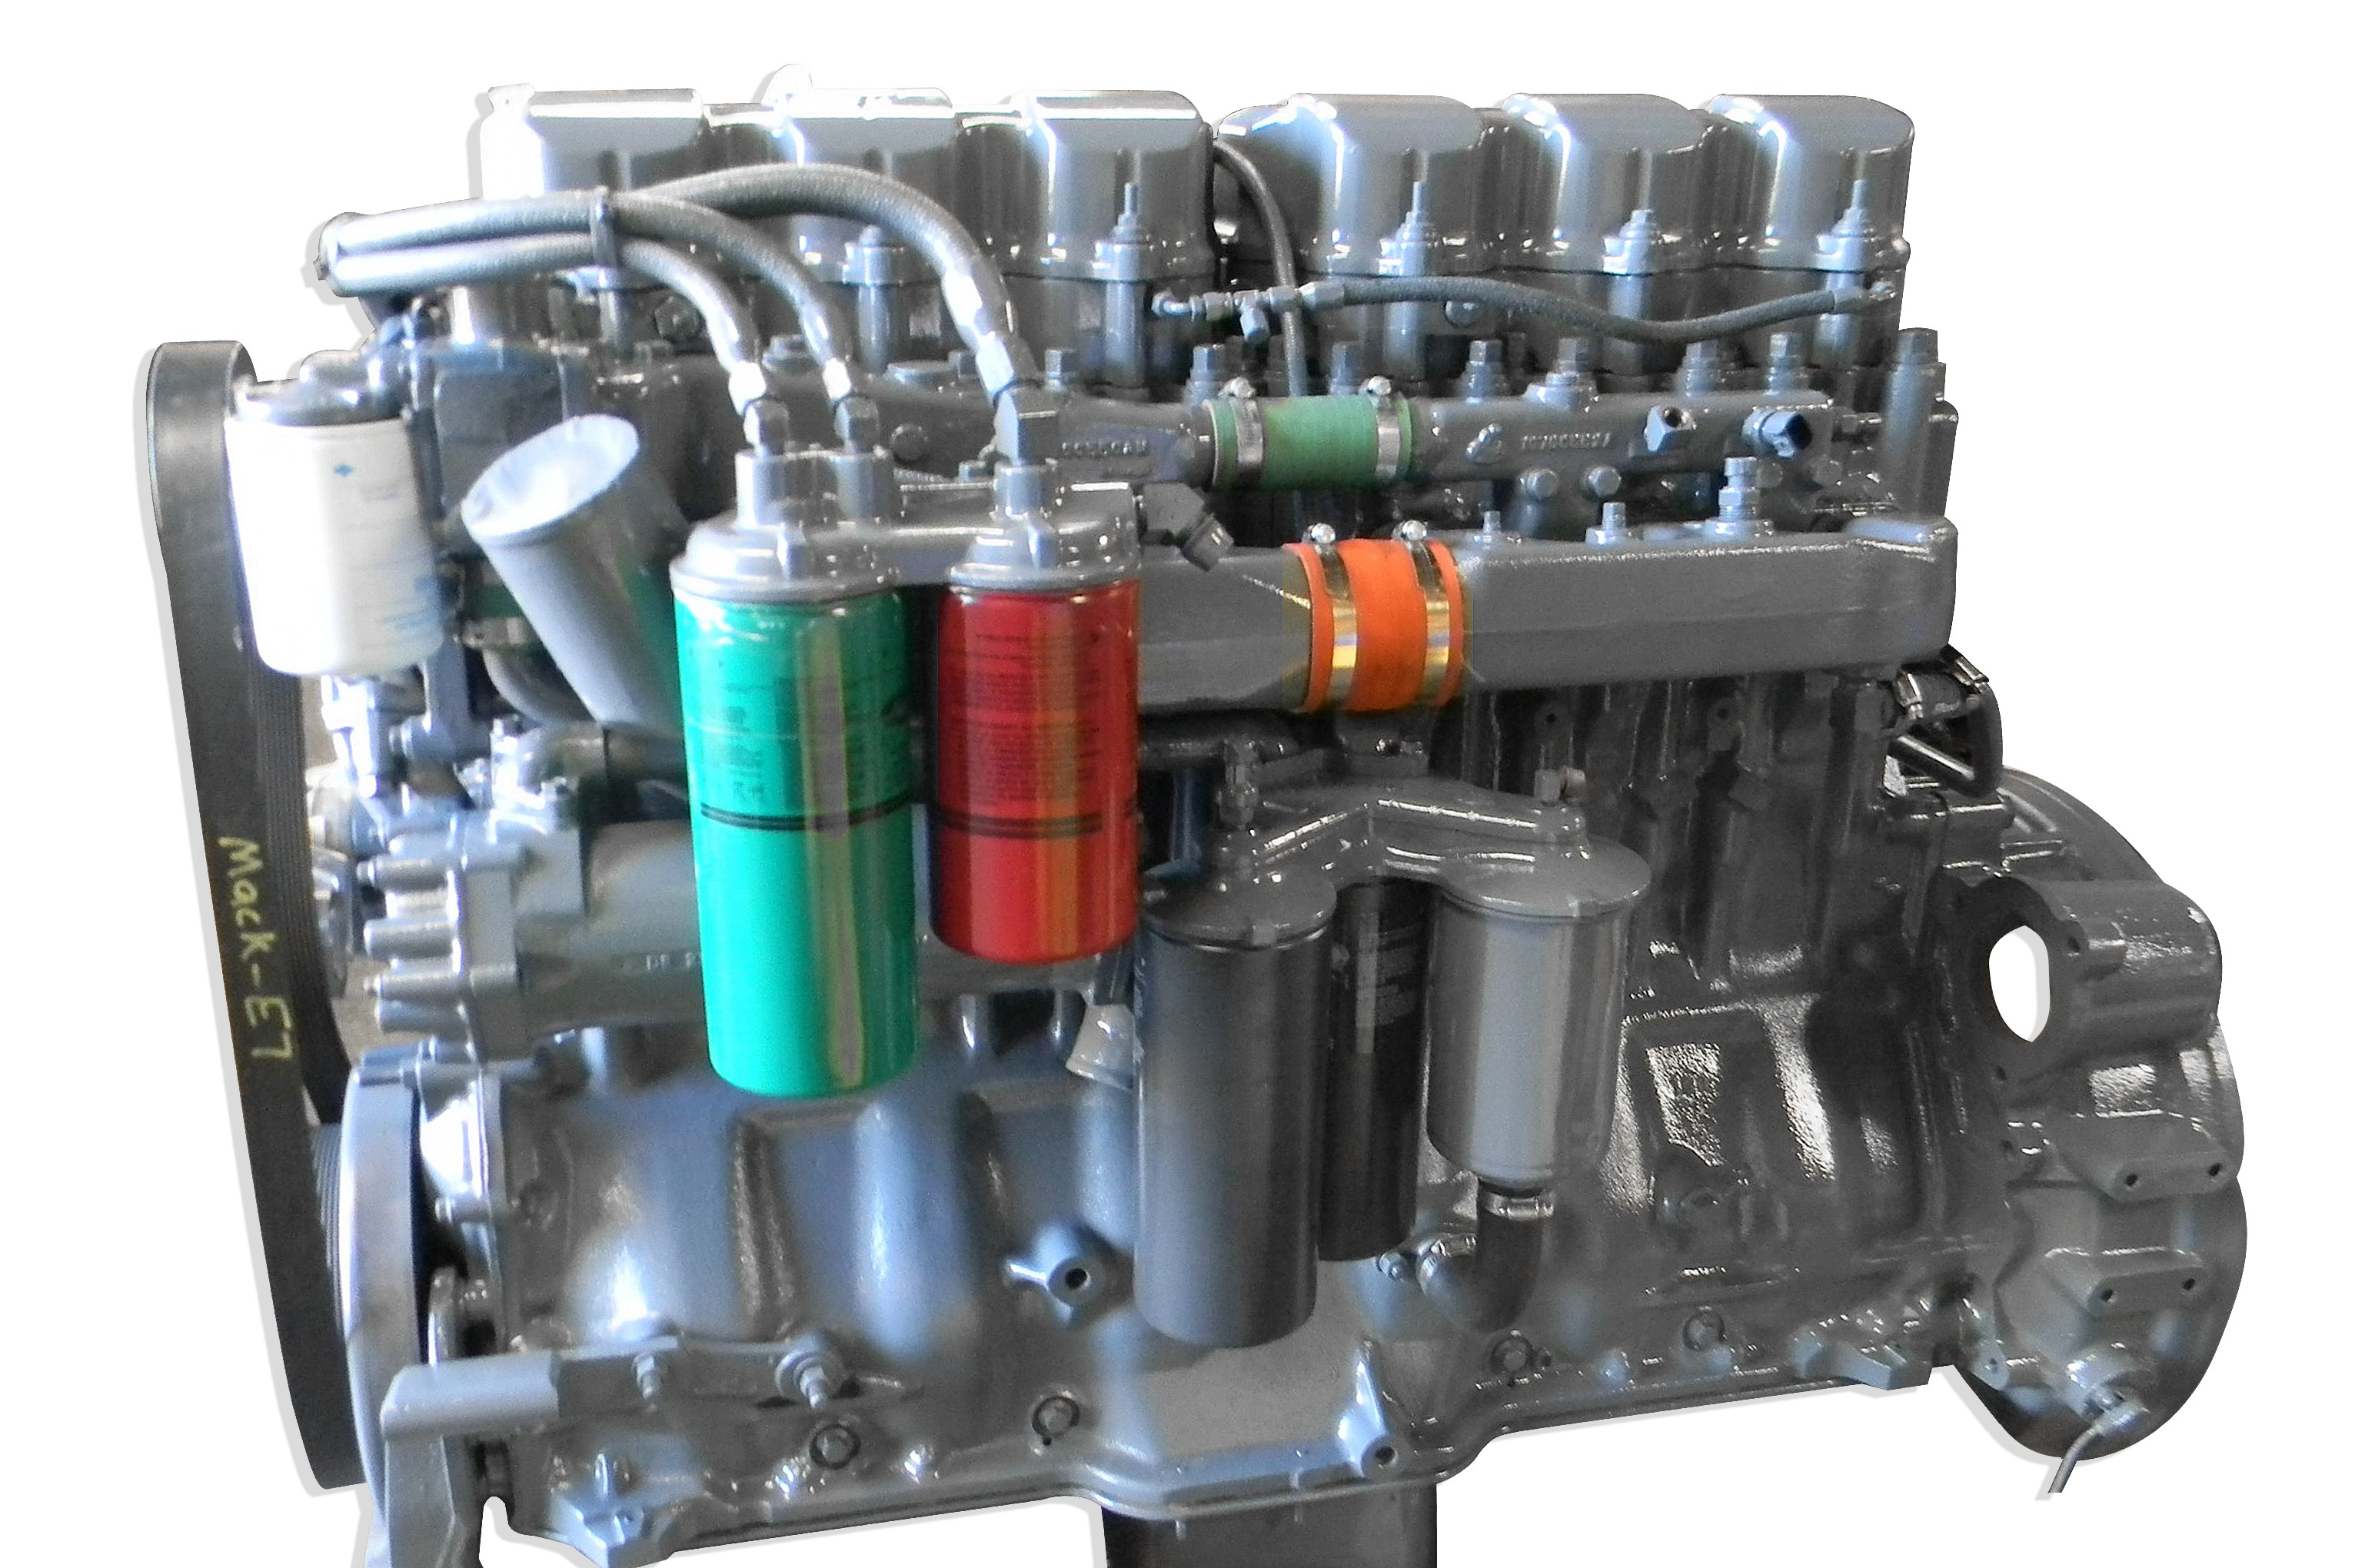 Mack mp7 engine diagram mack my wiring diagram mack mp7 engine diagram mack of mack mp7 engine diagram mack cheapraybanclubmaster Images